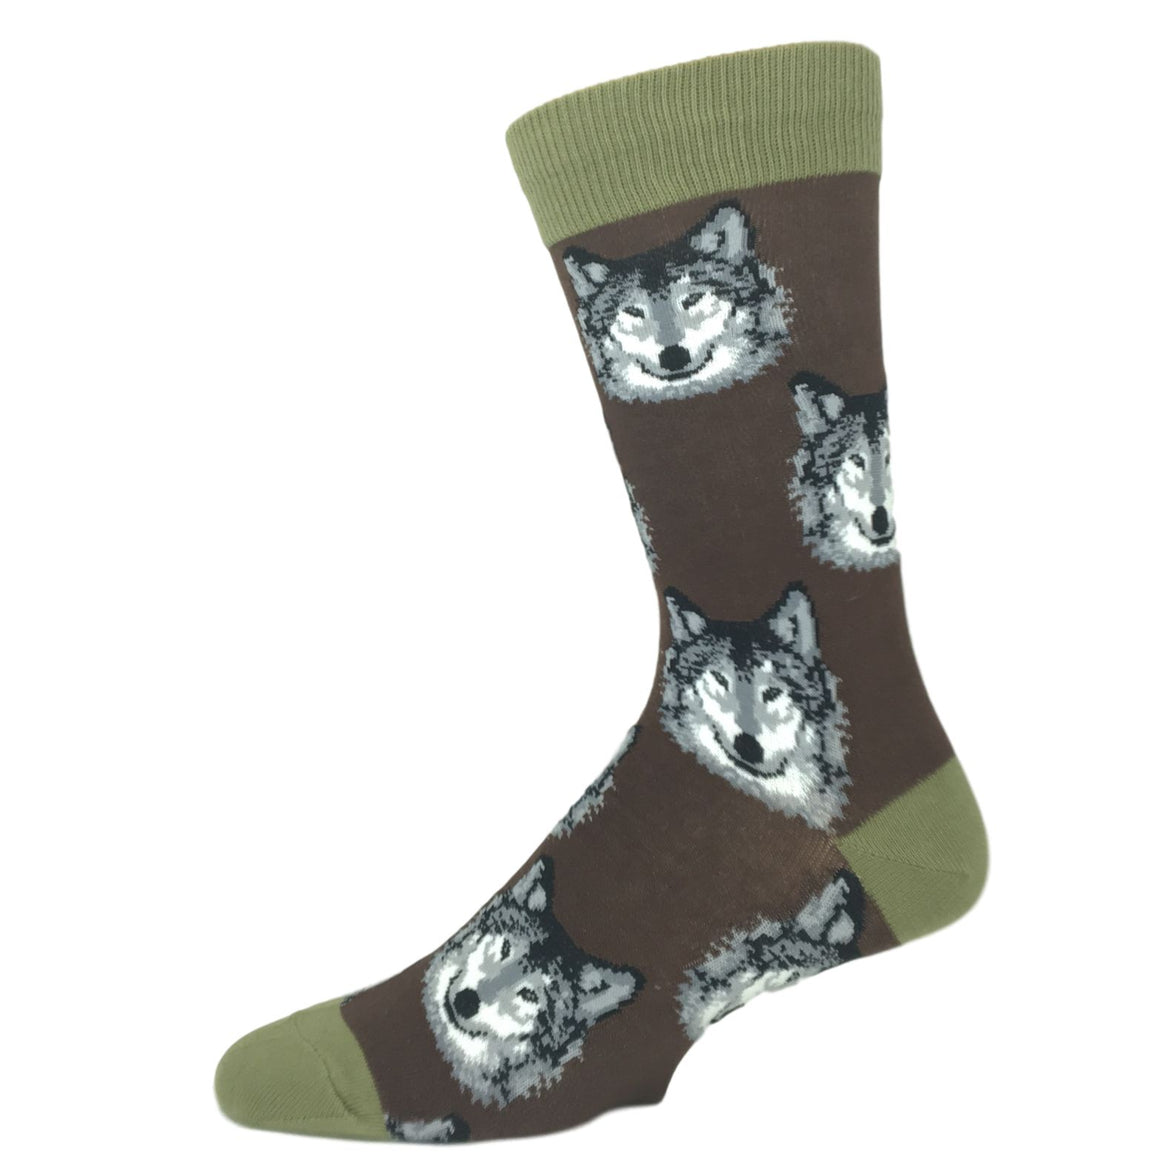 Hungry Like The Wolf Socks - Brown